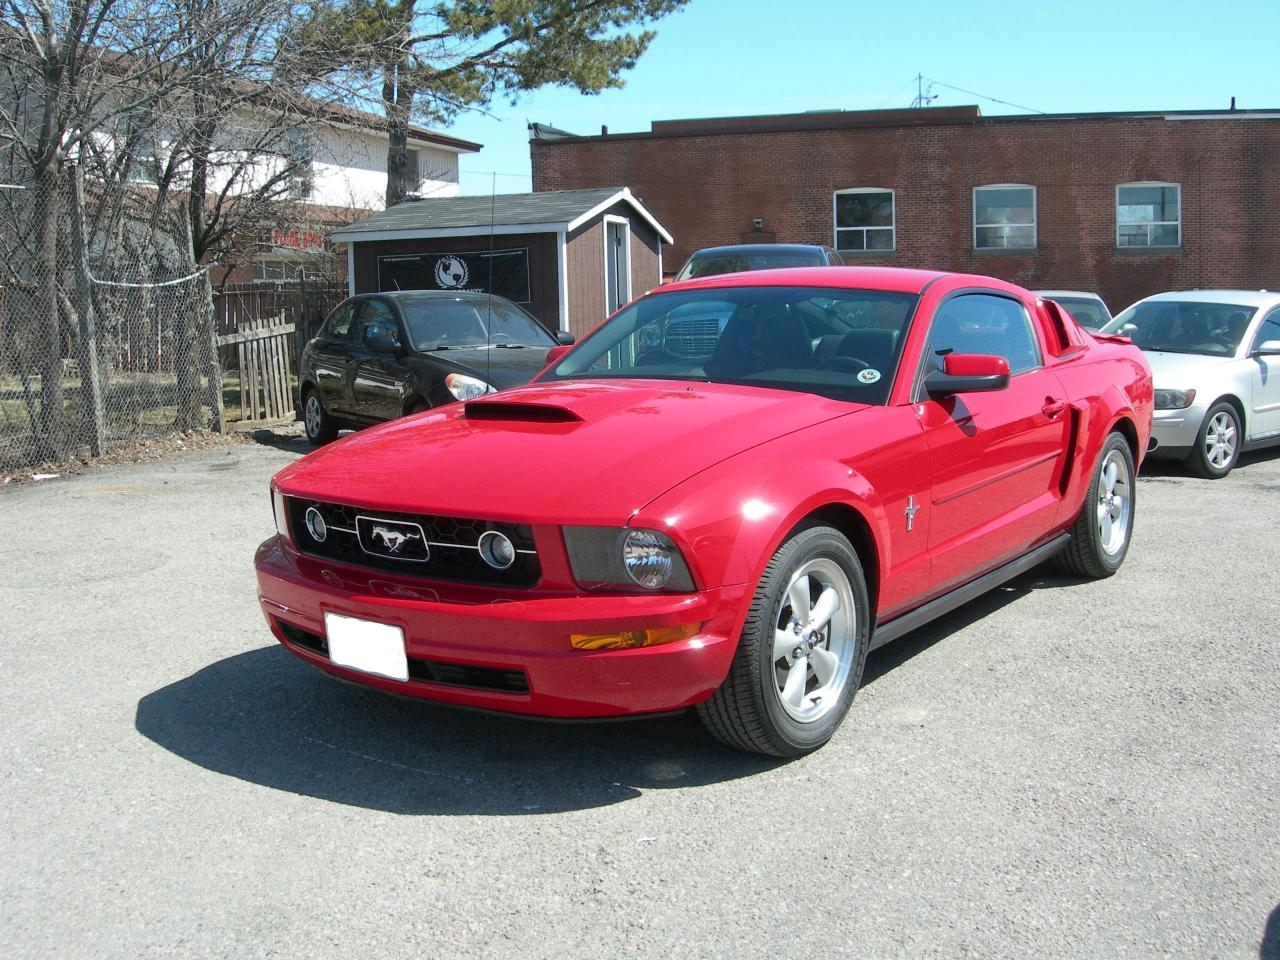 Used 2008 Ford Mustang Premium for Sale in Oshawa, Ontario | Carpages.ca